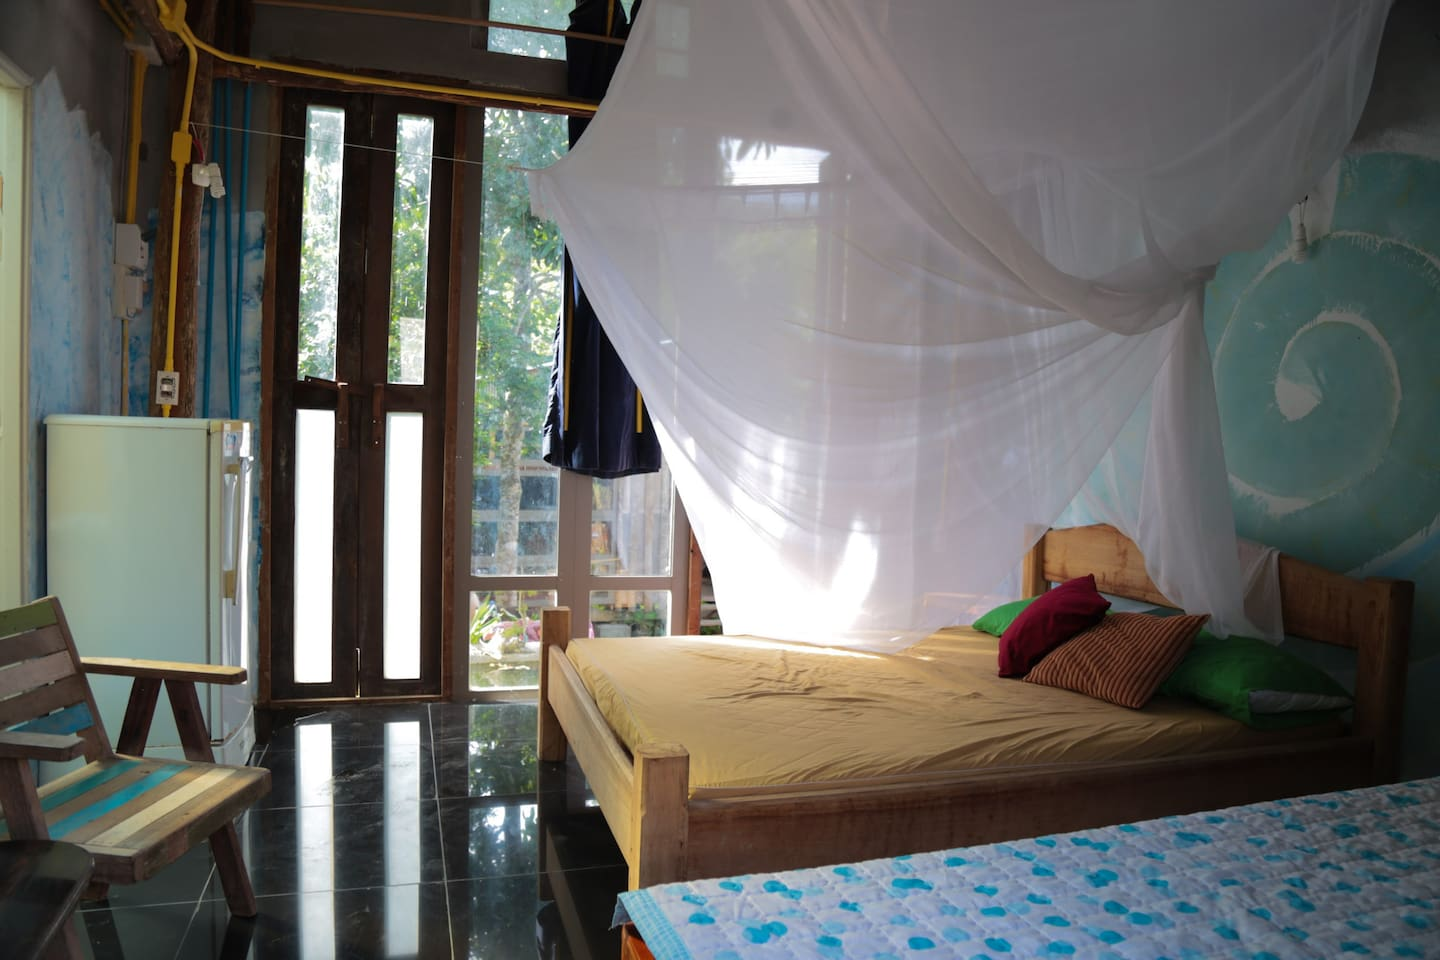 One Queen size bed  5 feet wide for 2 persons include mosquito net for   Premium safe from insects.